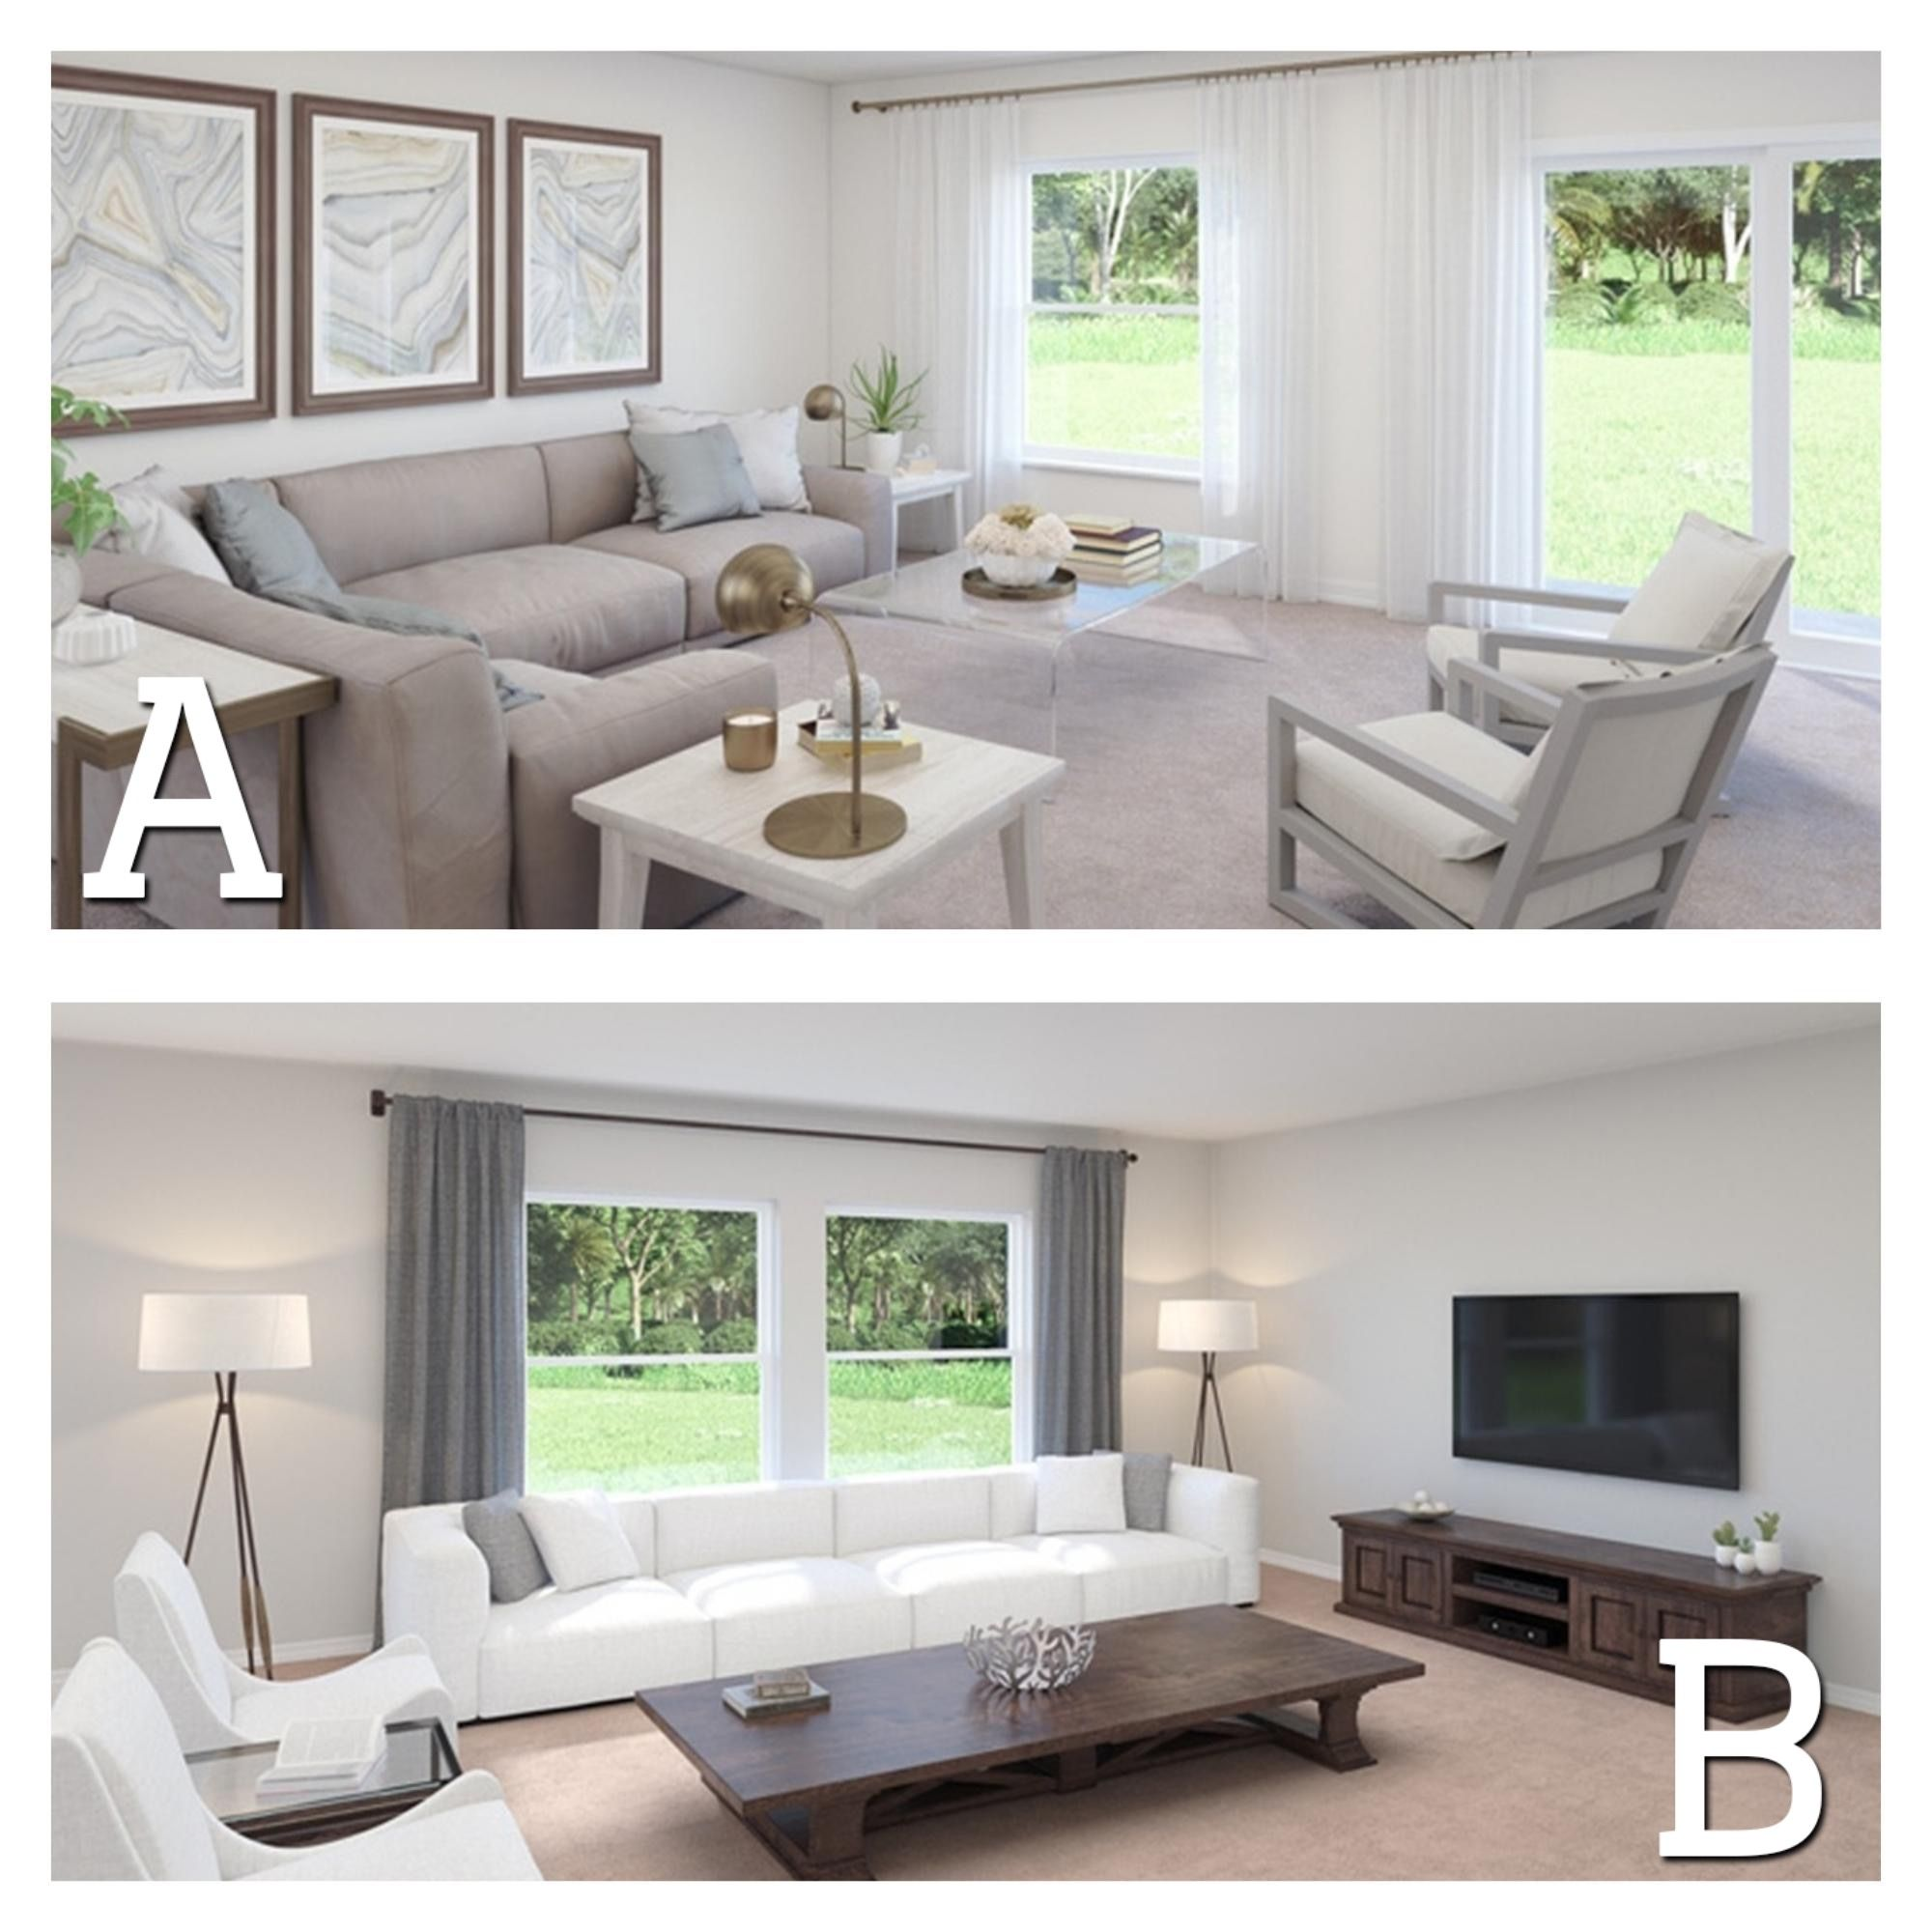 Which Living Room seating arrangement do you prefer? A ...